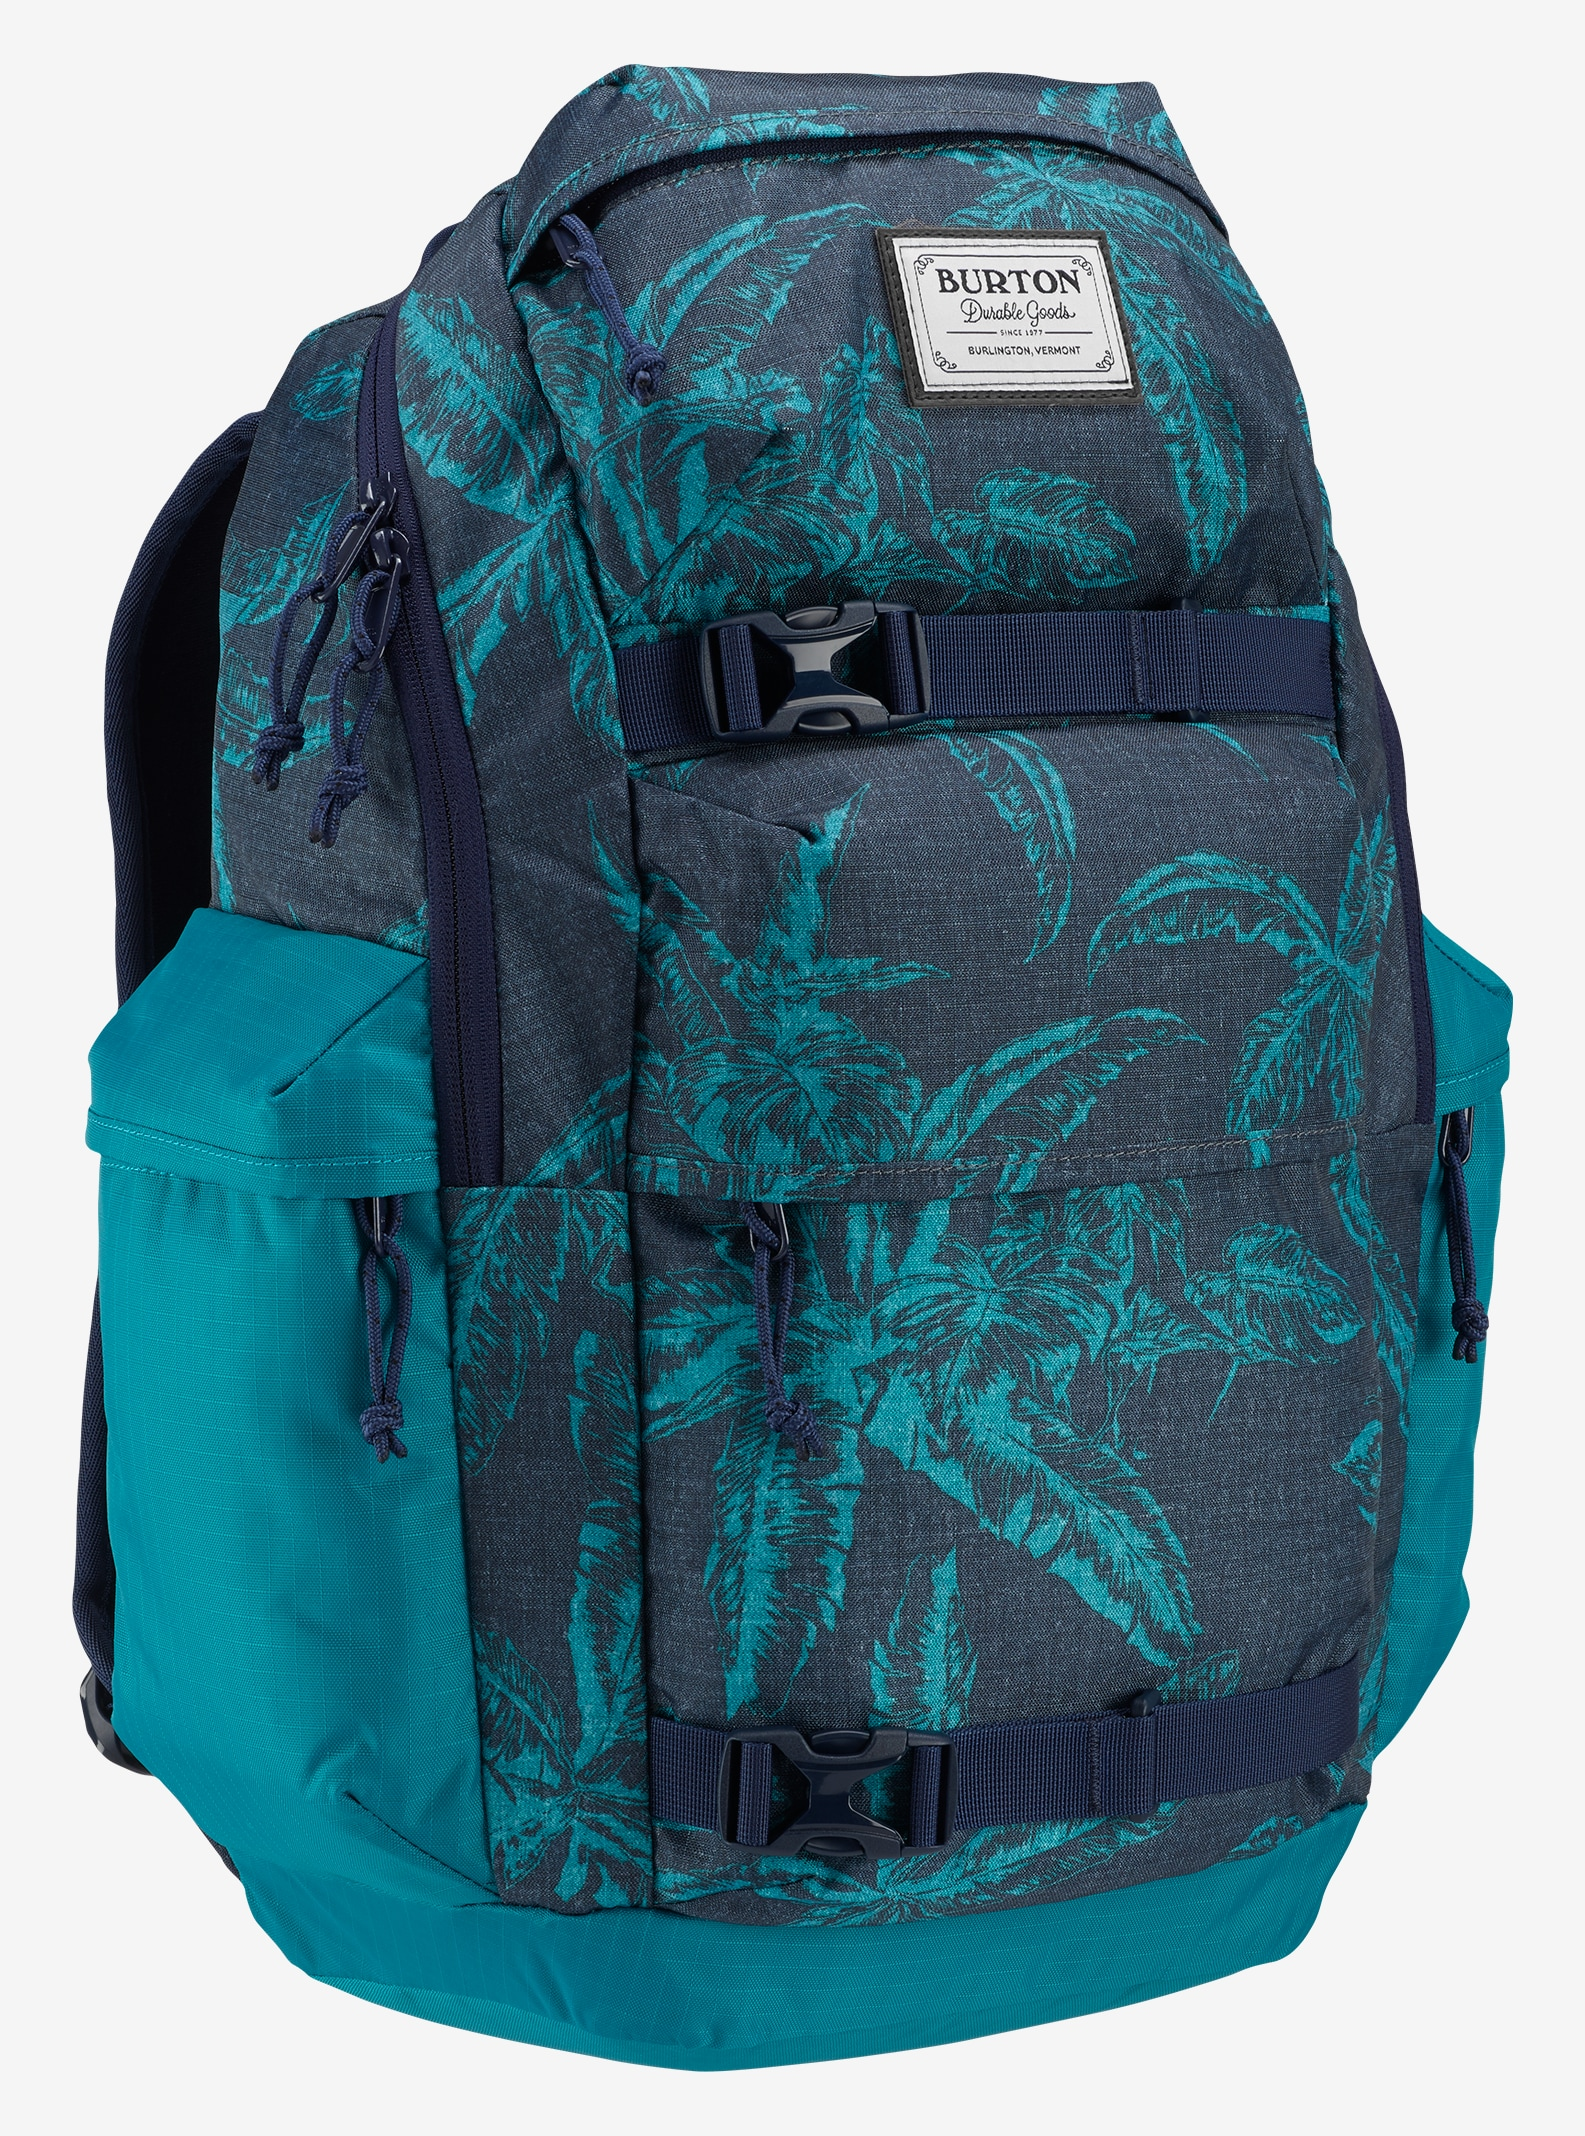 Burton Kilo Backpack shown in Tropical Print